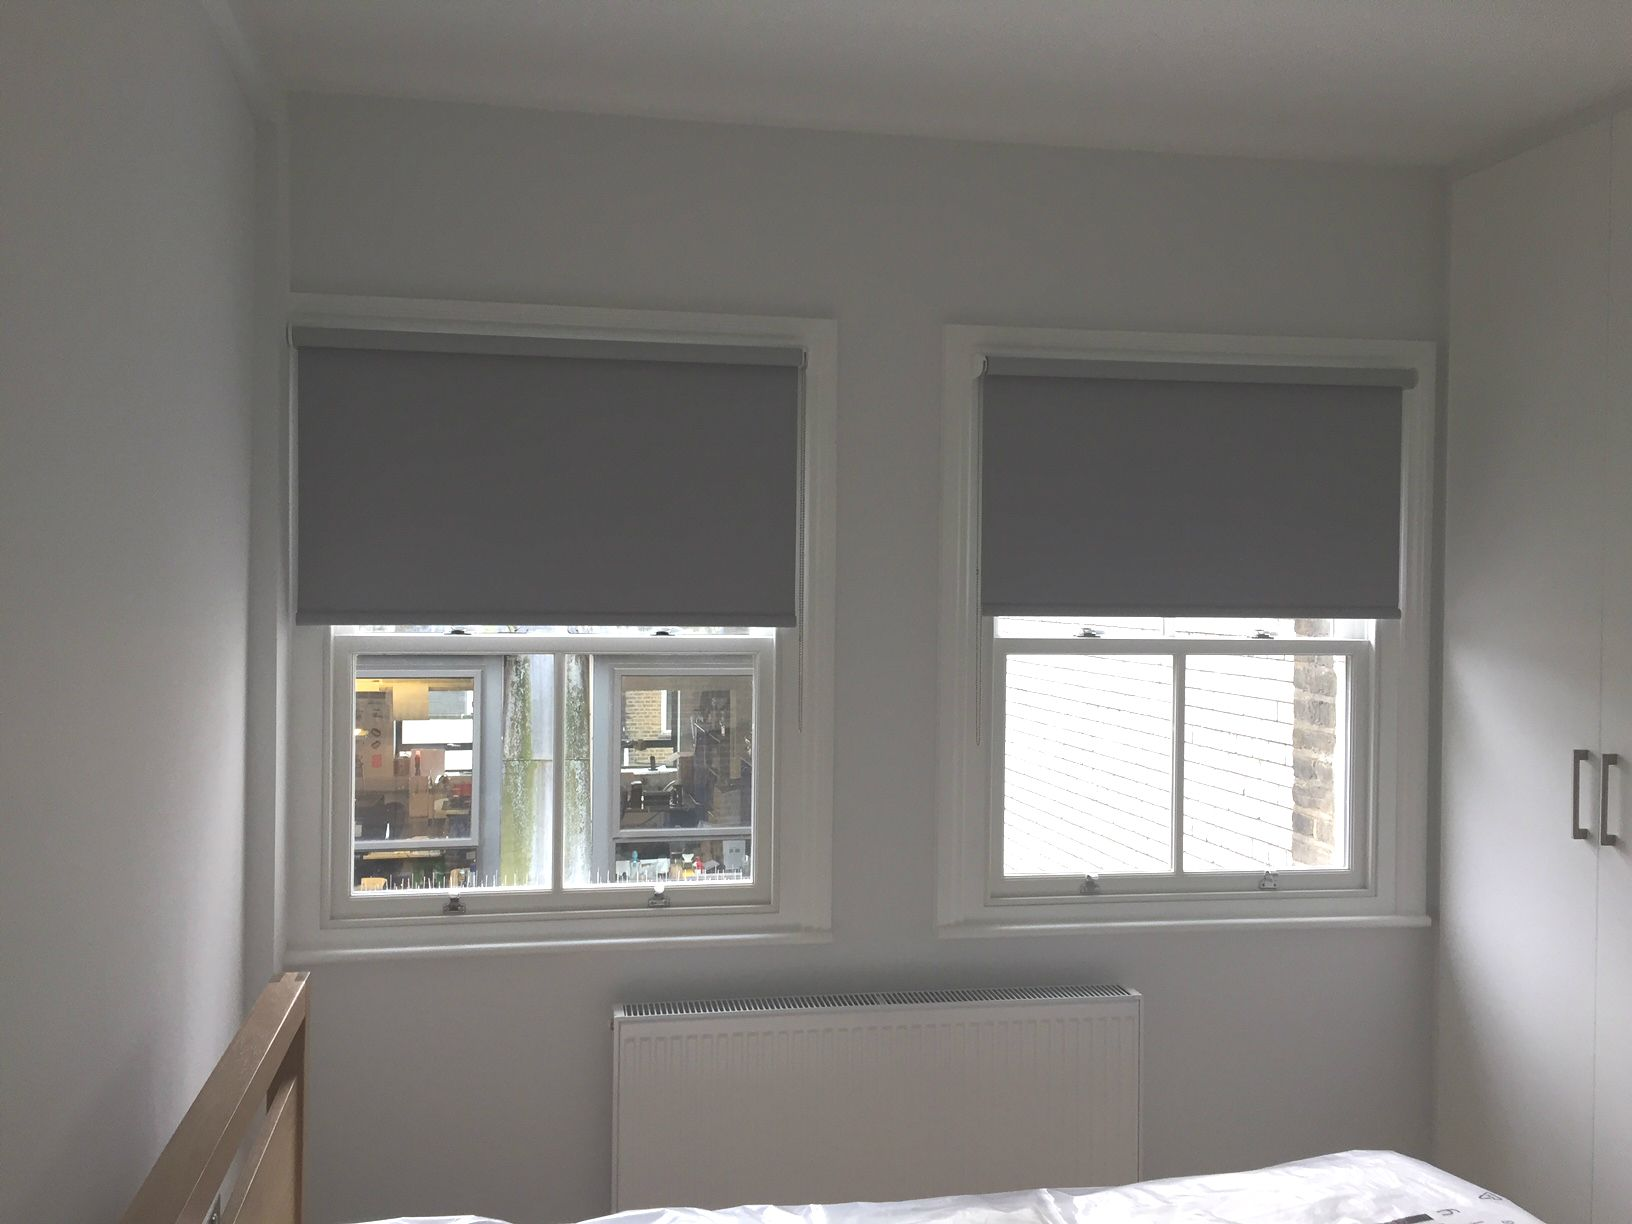 Blackout Roller Blinds For Bedroom Sash Windows